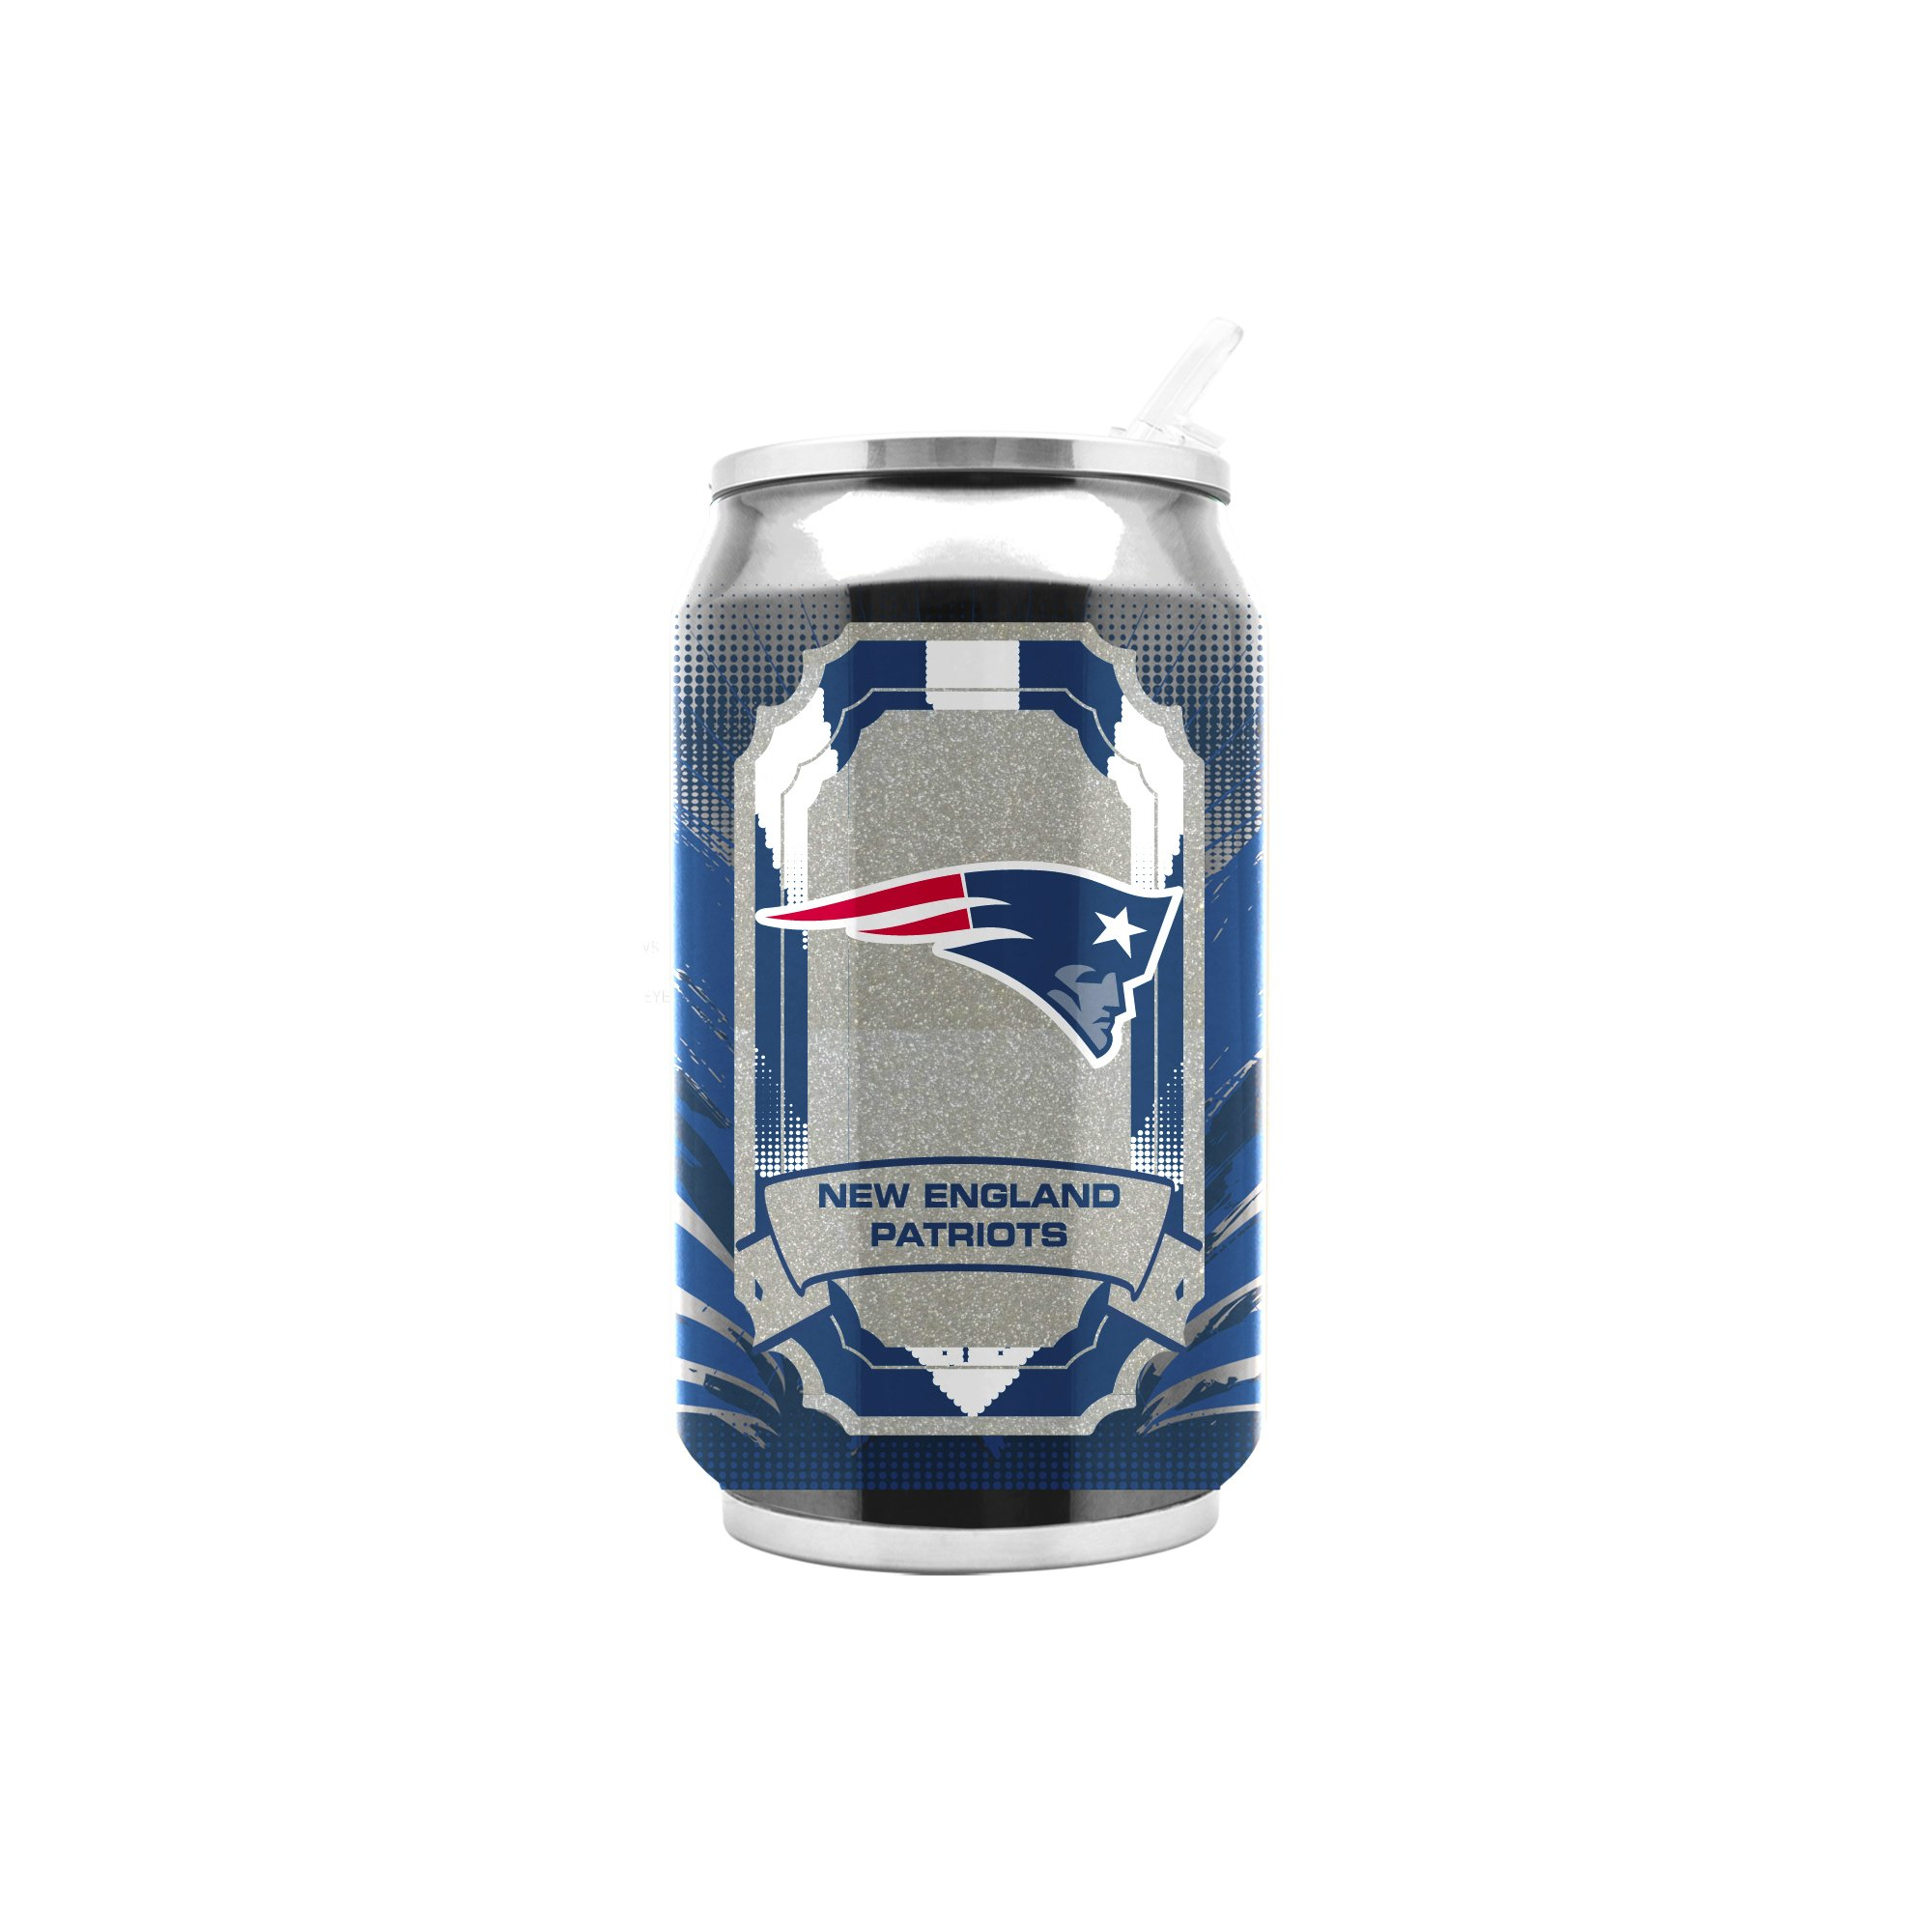 NFL New England Patriots 16oz Double Wall Stainless Steel Thermocan by Duck House